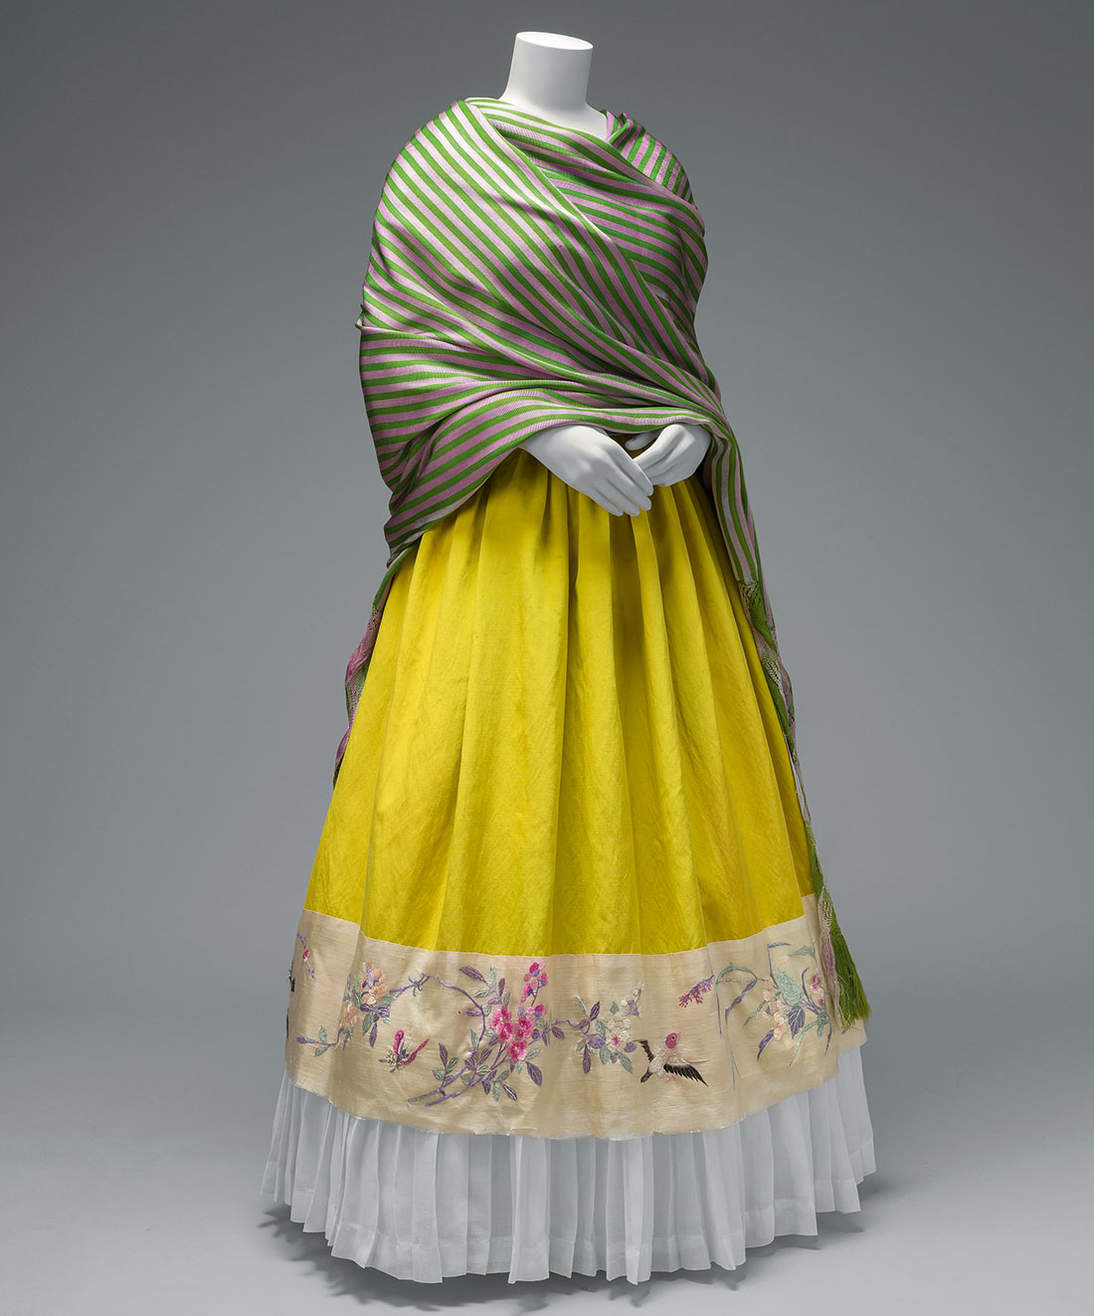 Rebozo with rapacelo (knotted fringe); silk skirt with Chinese embroidered panel and holán (ruffle). Diego Rivera and Frida Kahlo Archives, Banco de México, Fiduciary of the Trust of the Diego Rivera and Frida Kahlo Museums. Photograph: Javier Hinojosa